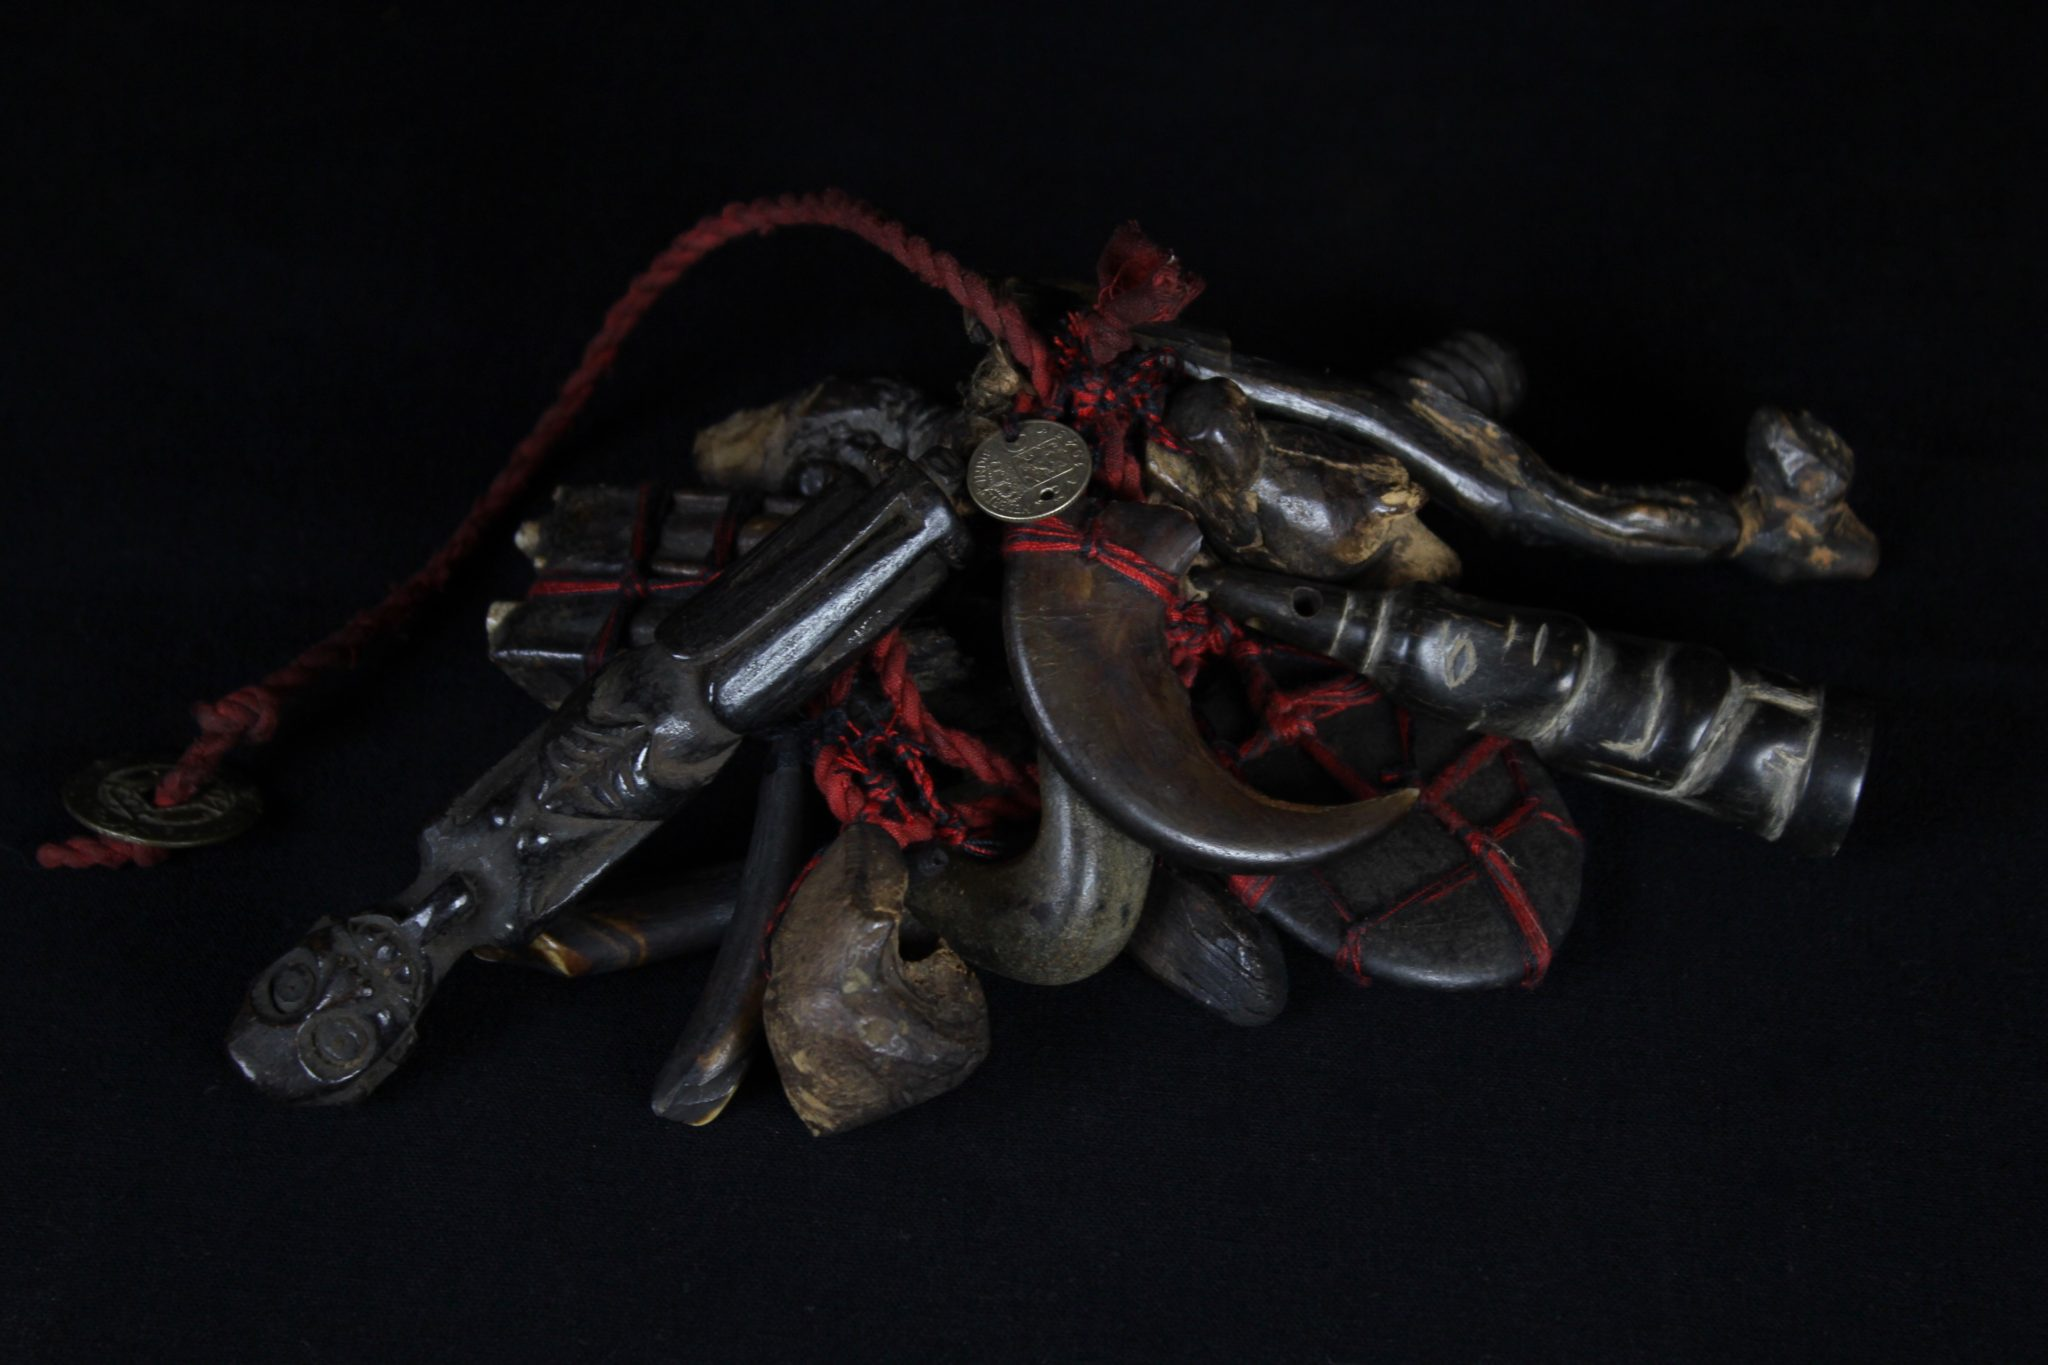 """Shaman Healing Fetish Rattle Borneo, Indonesia, Dayak tribe, Early 20th c, Wood pigmented with soot, stone, animal teeth and claws, coins, patinated with age and use. Used for healing rituals. 14"""" x 8"""" x 4"""", $560."""